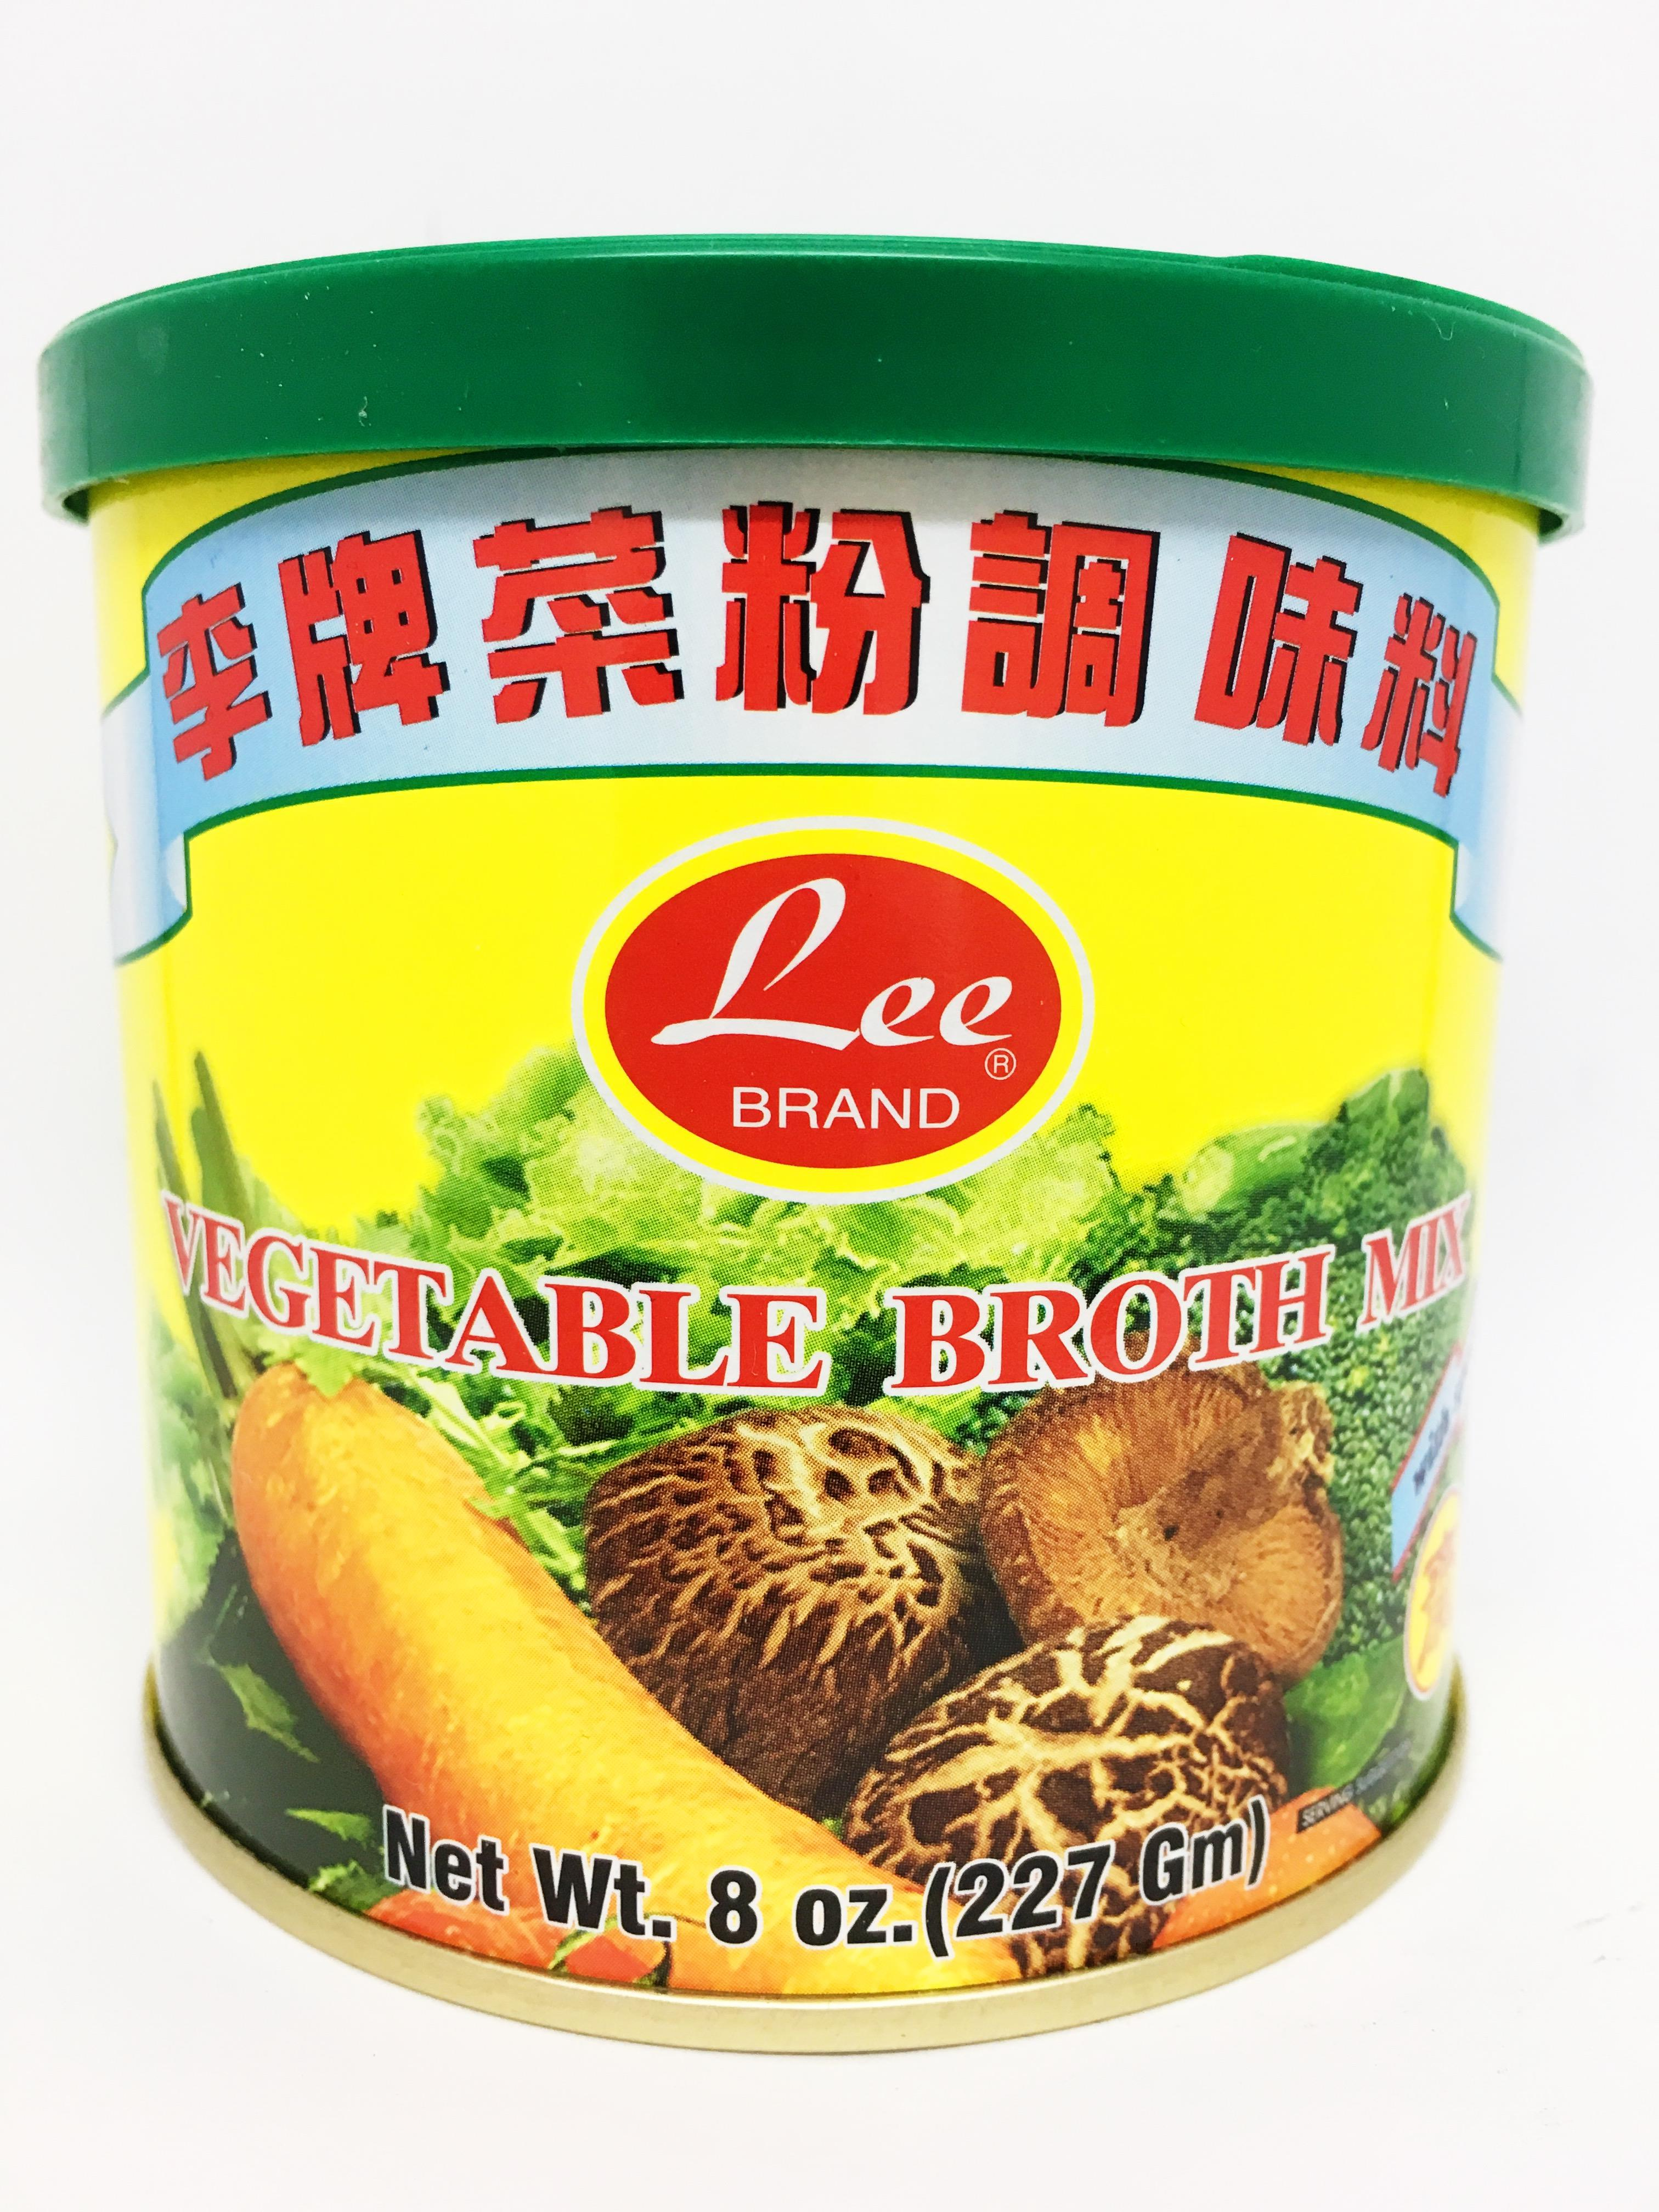 Lee Brand Vegetable Broth Mix 227g From Buy Asian Food 4u